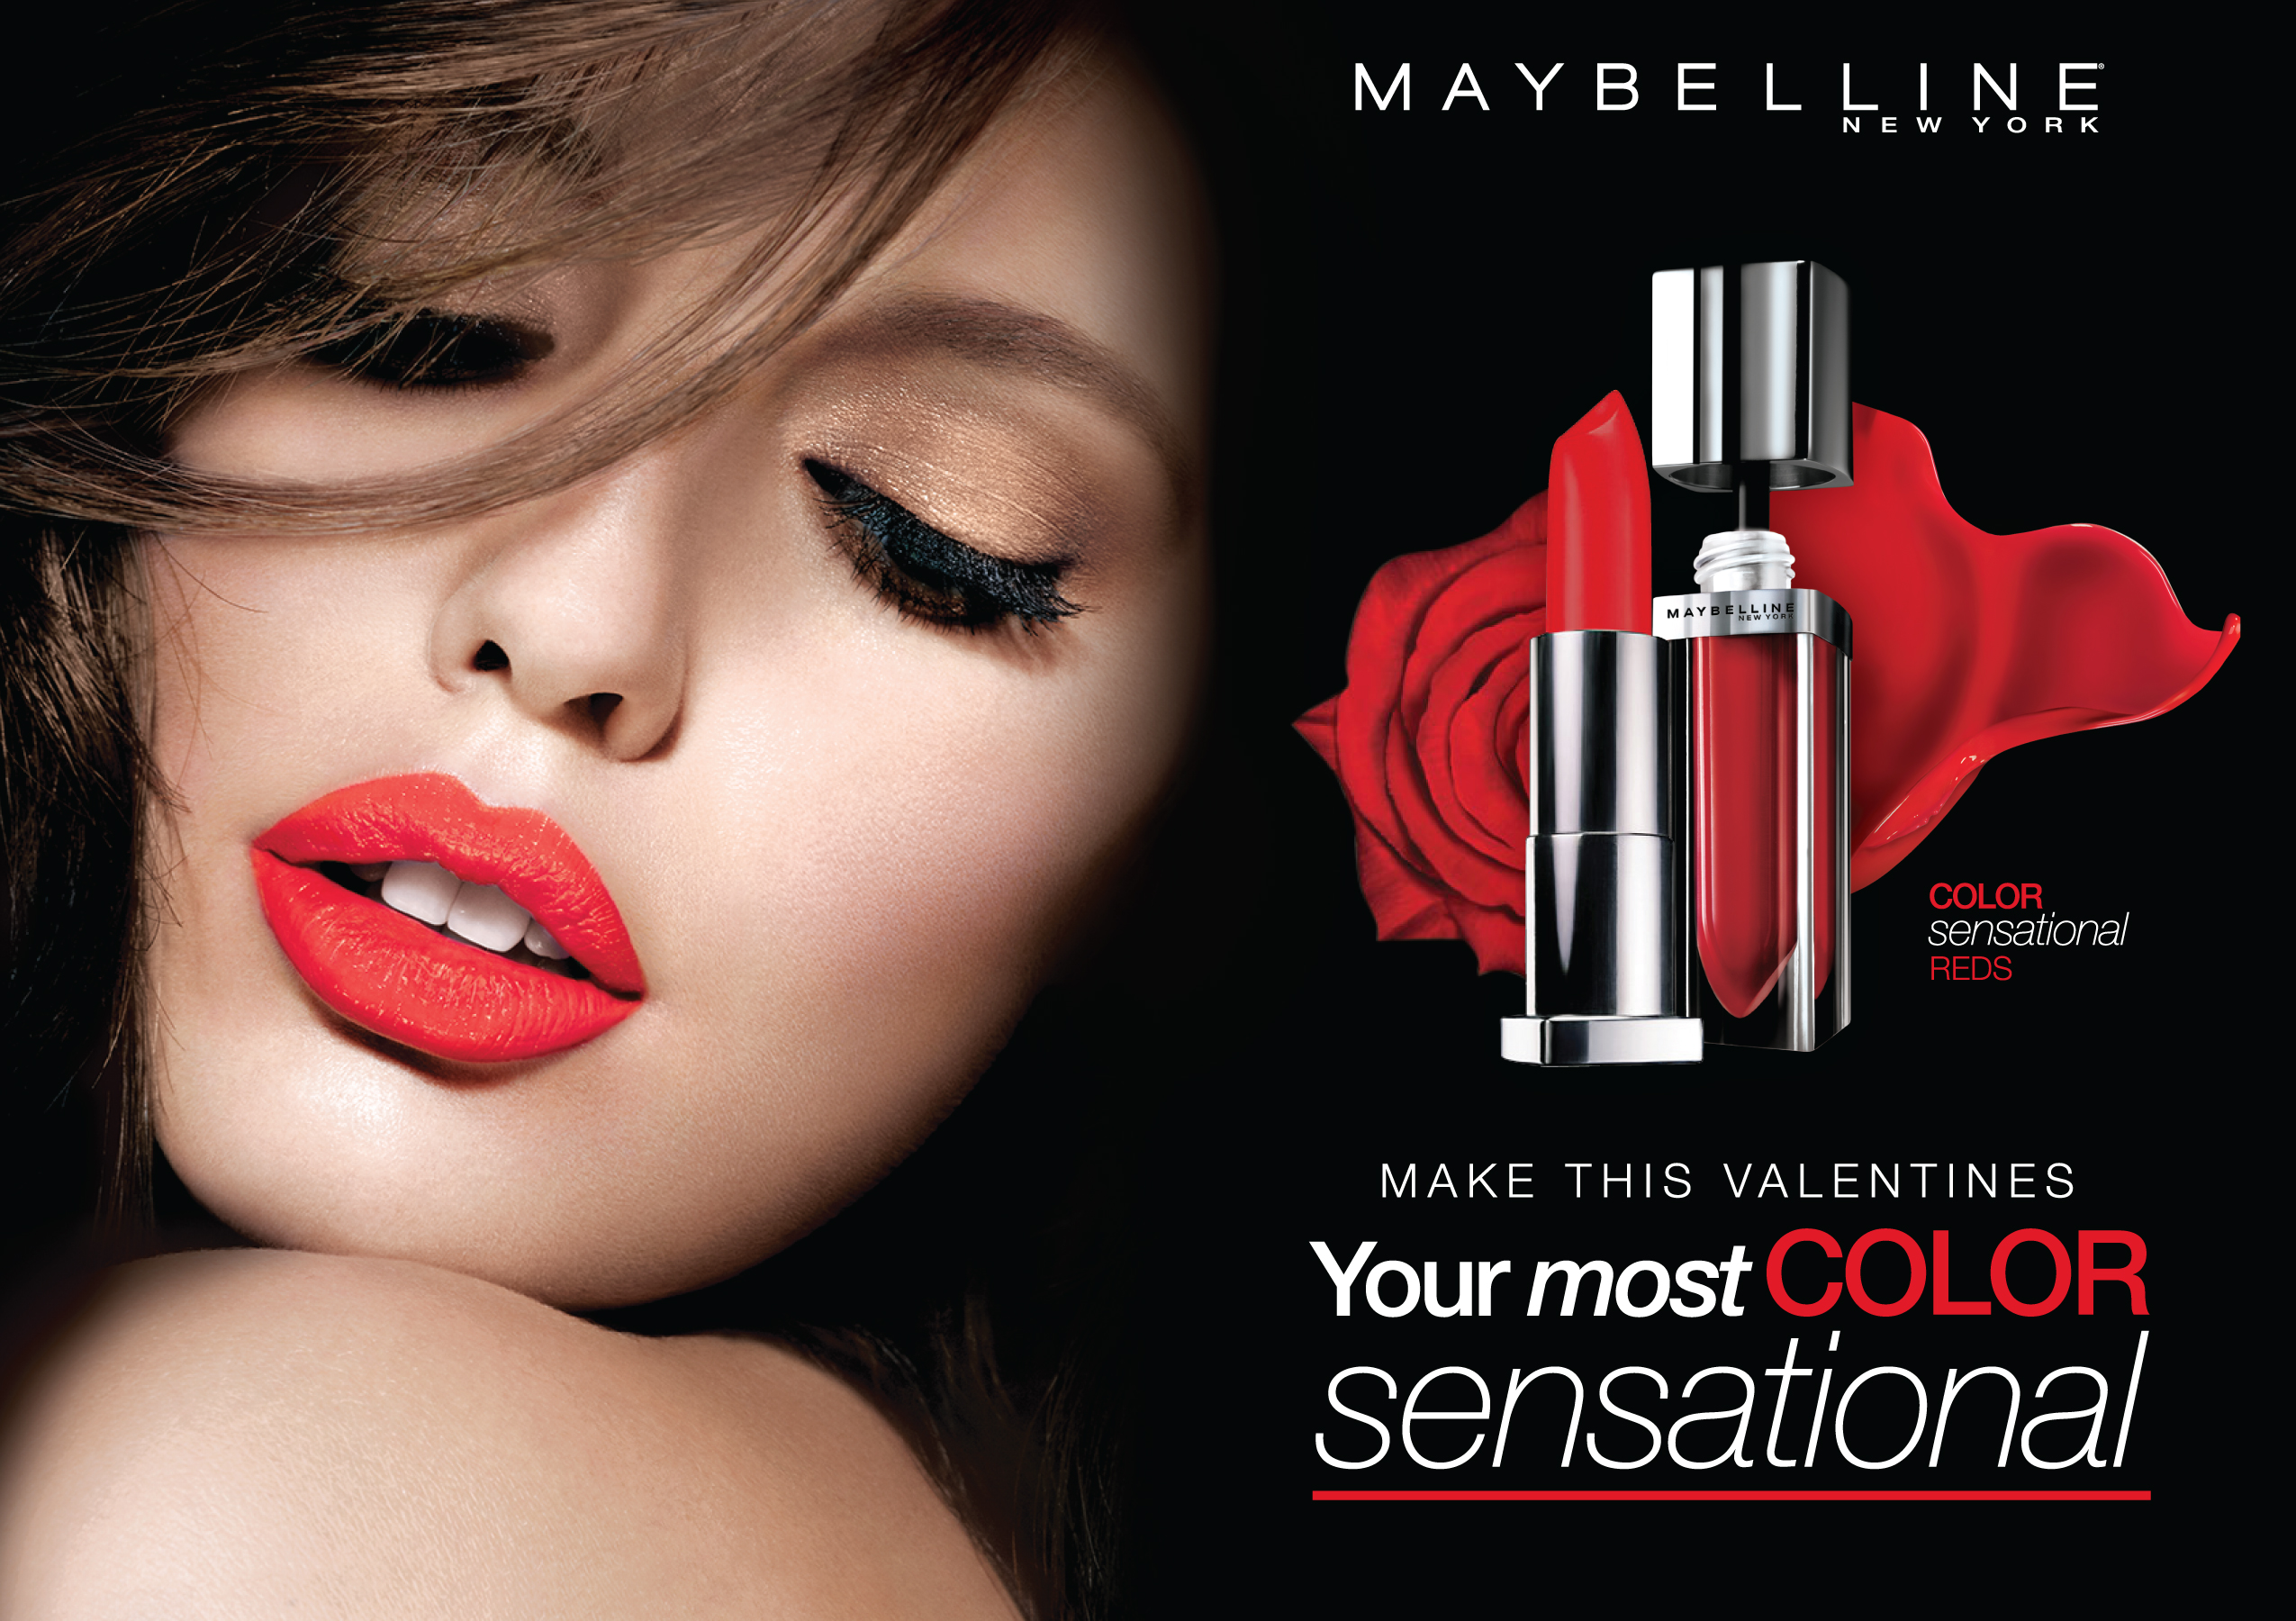 Makeup Review The Tough Ways I Put The New Maybelline